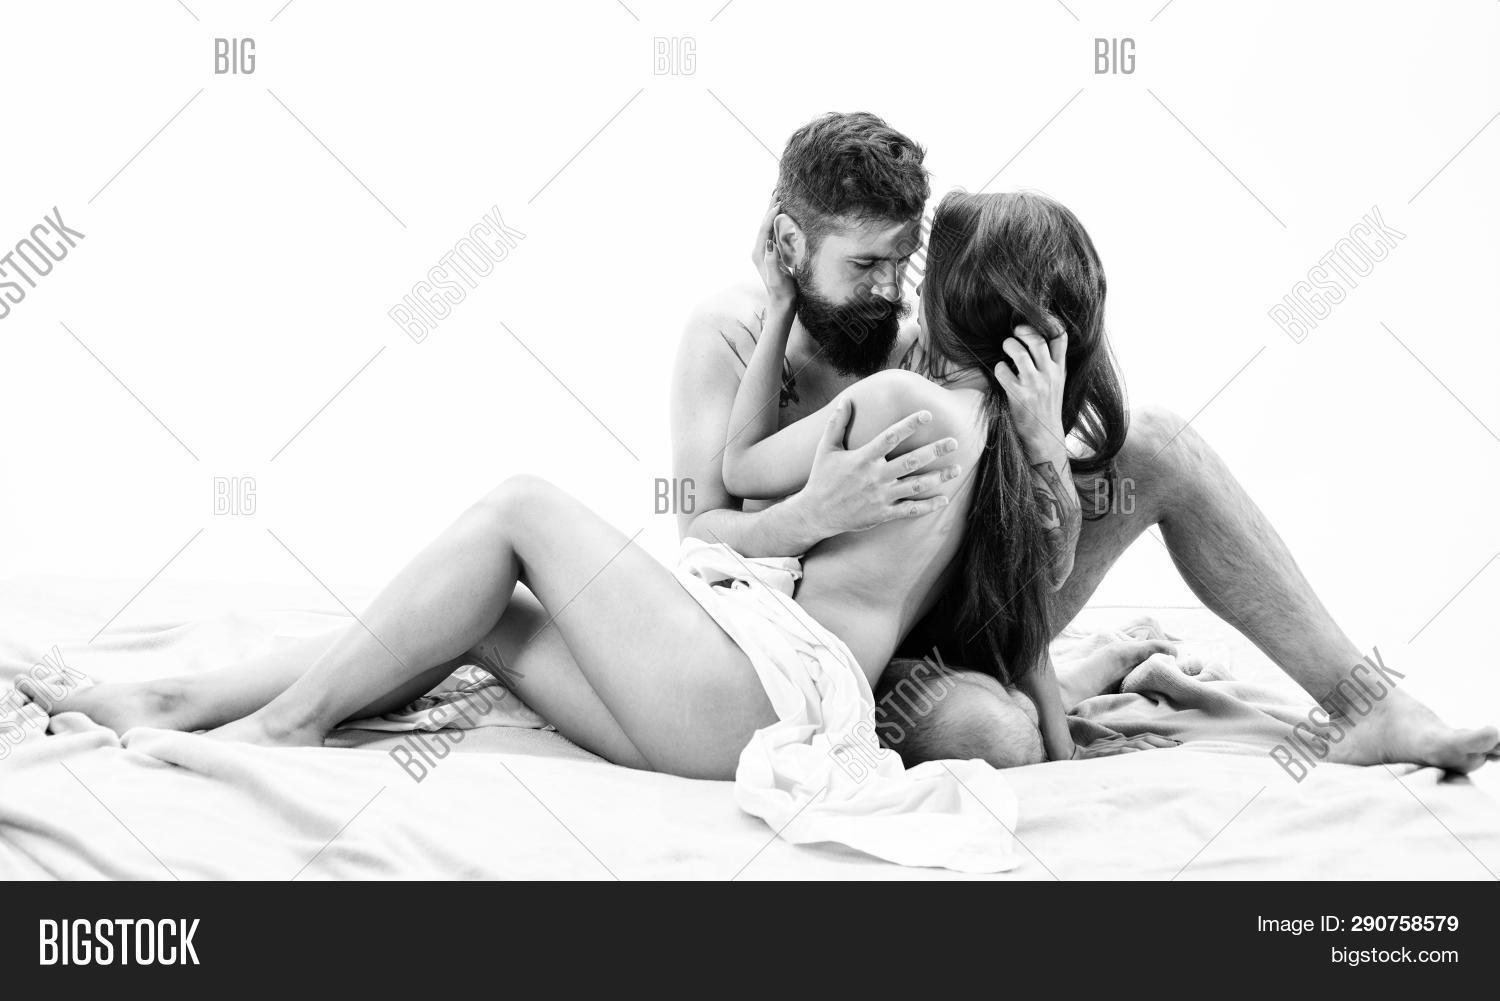 Couple Lovers Naked Hug Or Cuddling In Bed. Art Of Seduction. Hipster Seduce Attractive Girl. Desire